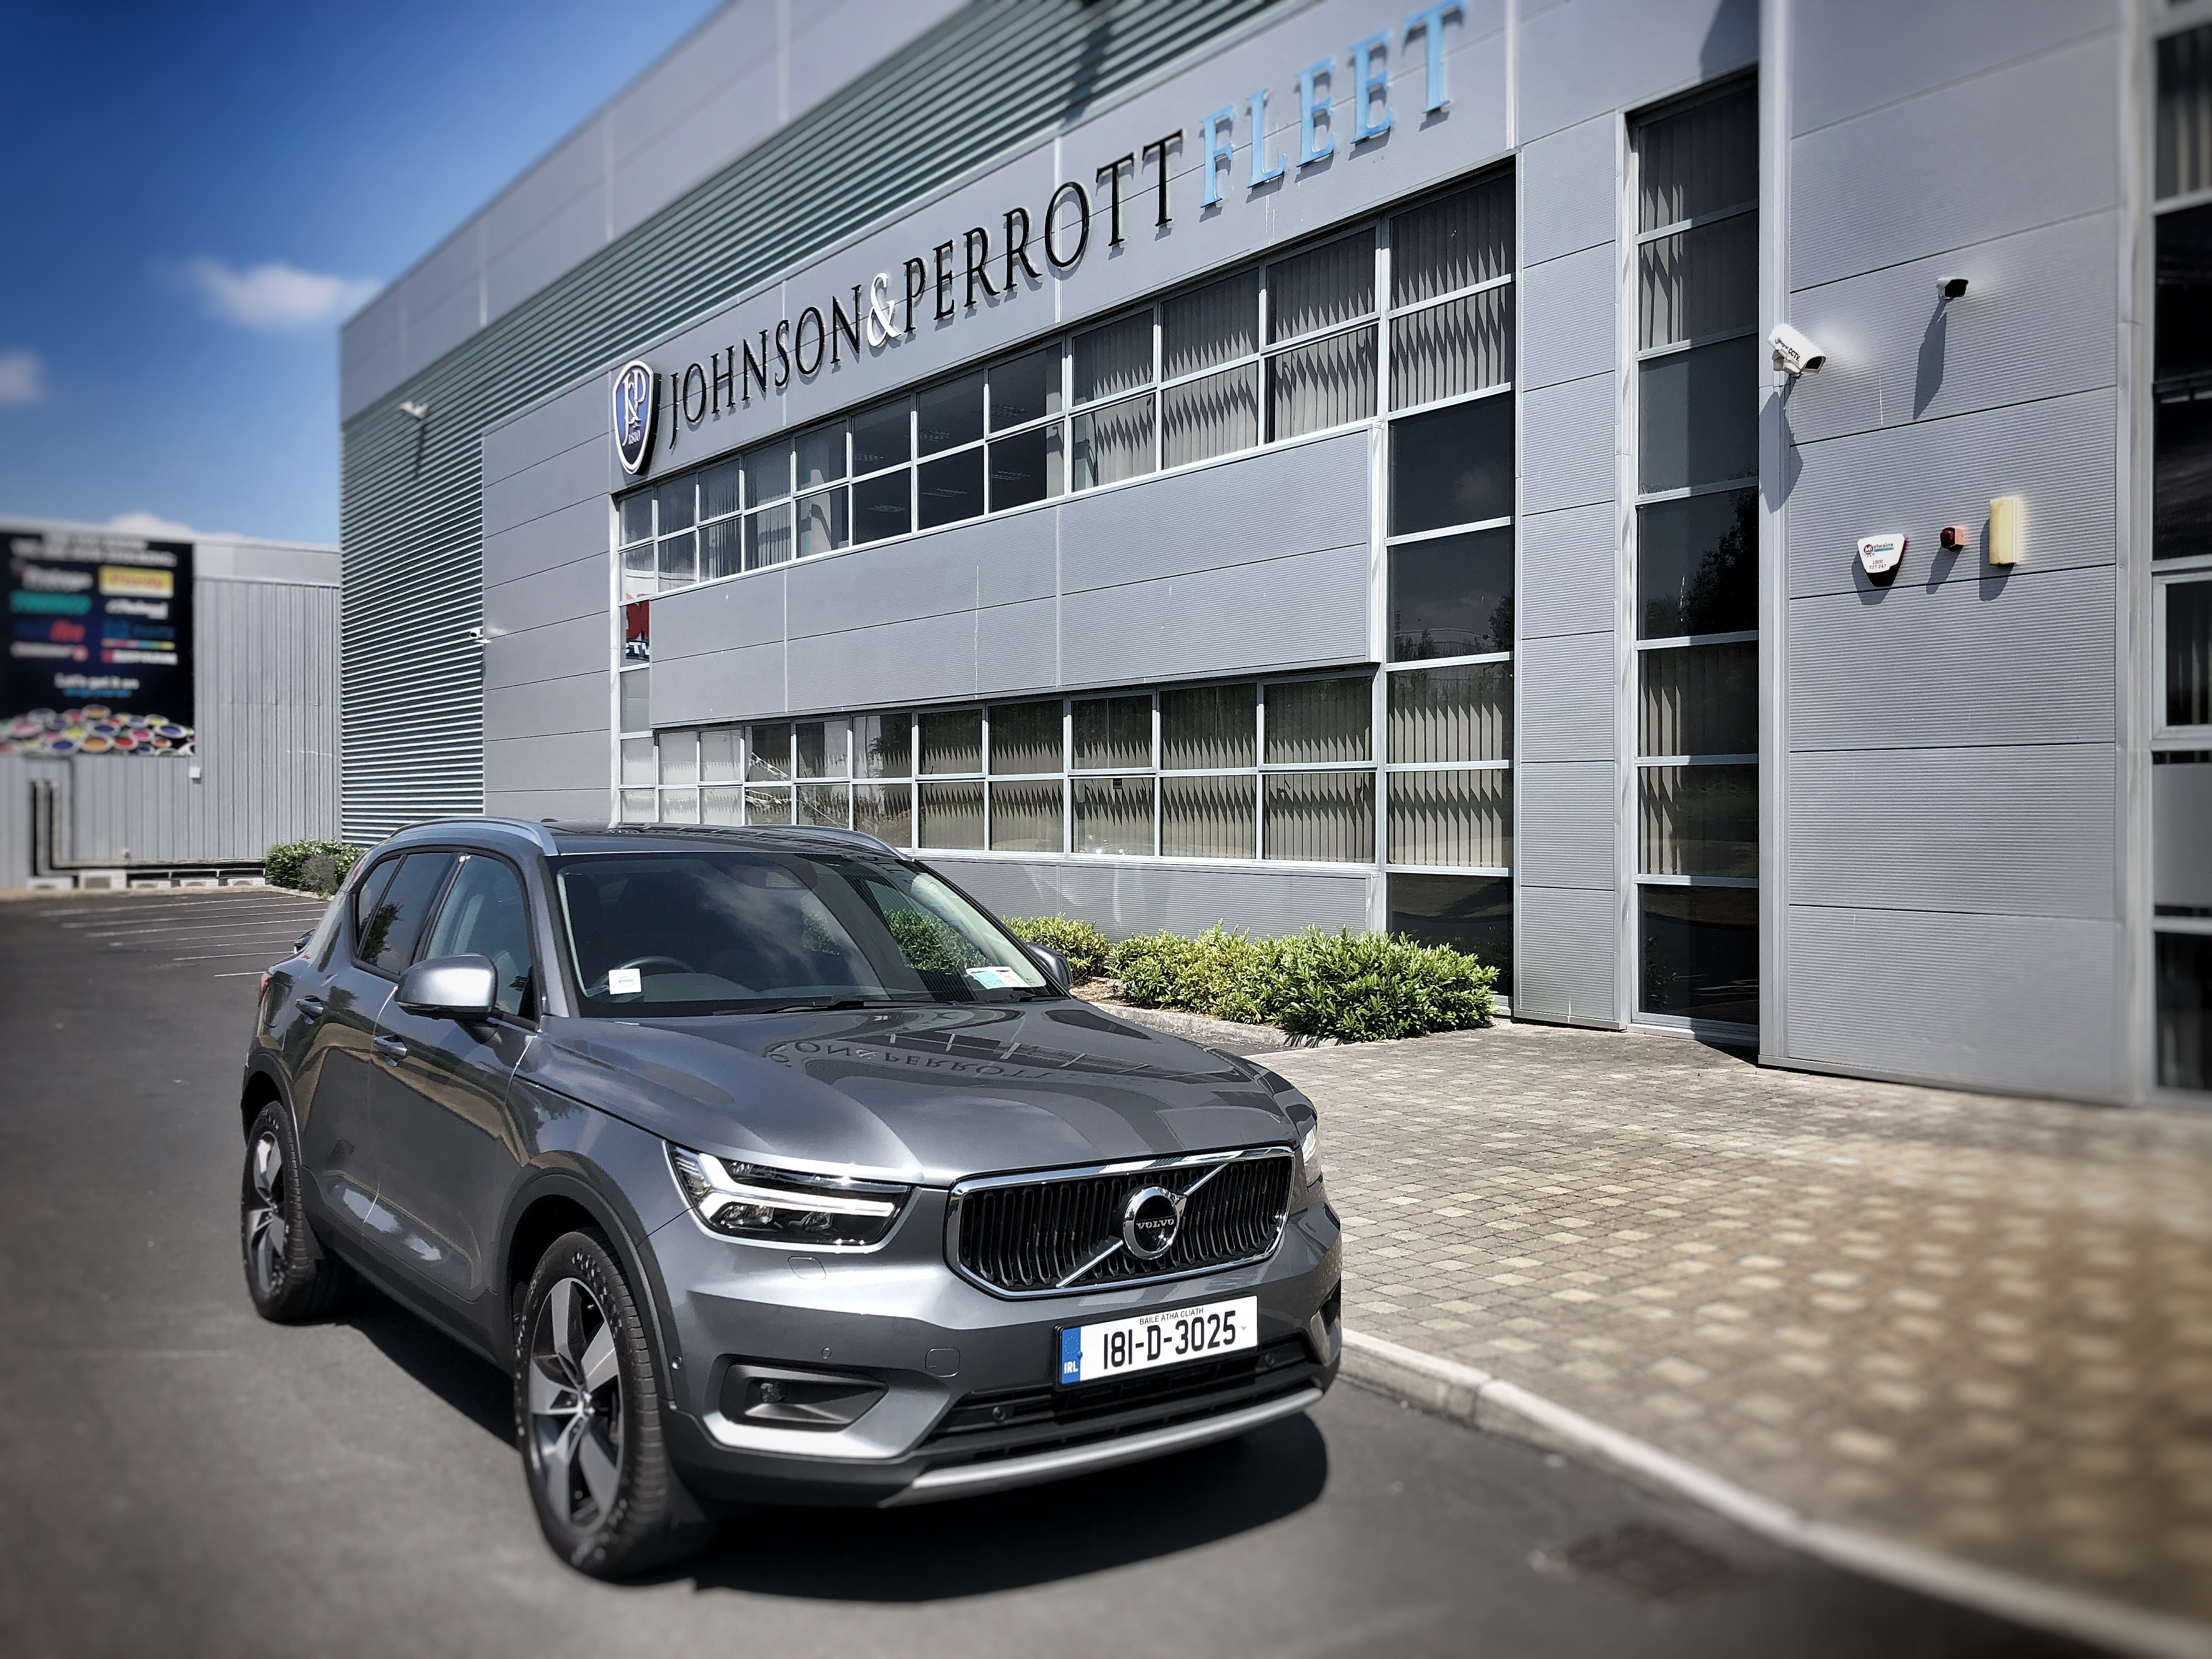 johnson and perrott volvo xc40 leasing johnson perrott. Black Bedroom Furniture Sets. Home Design Ideas